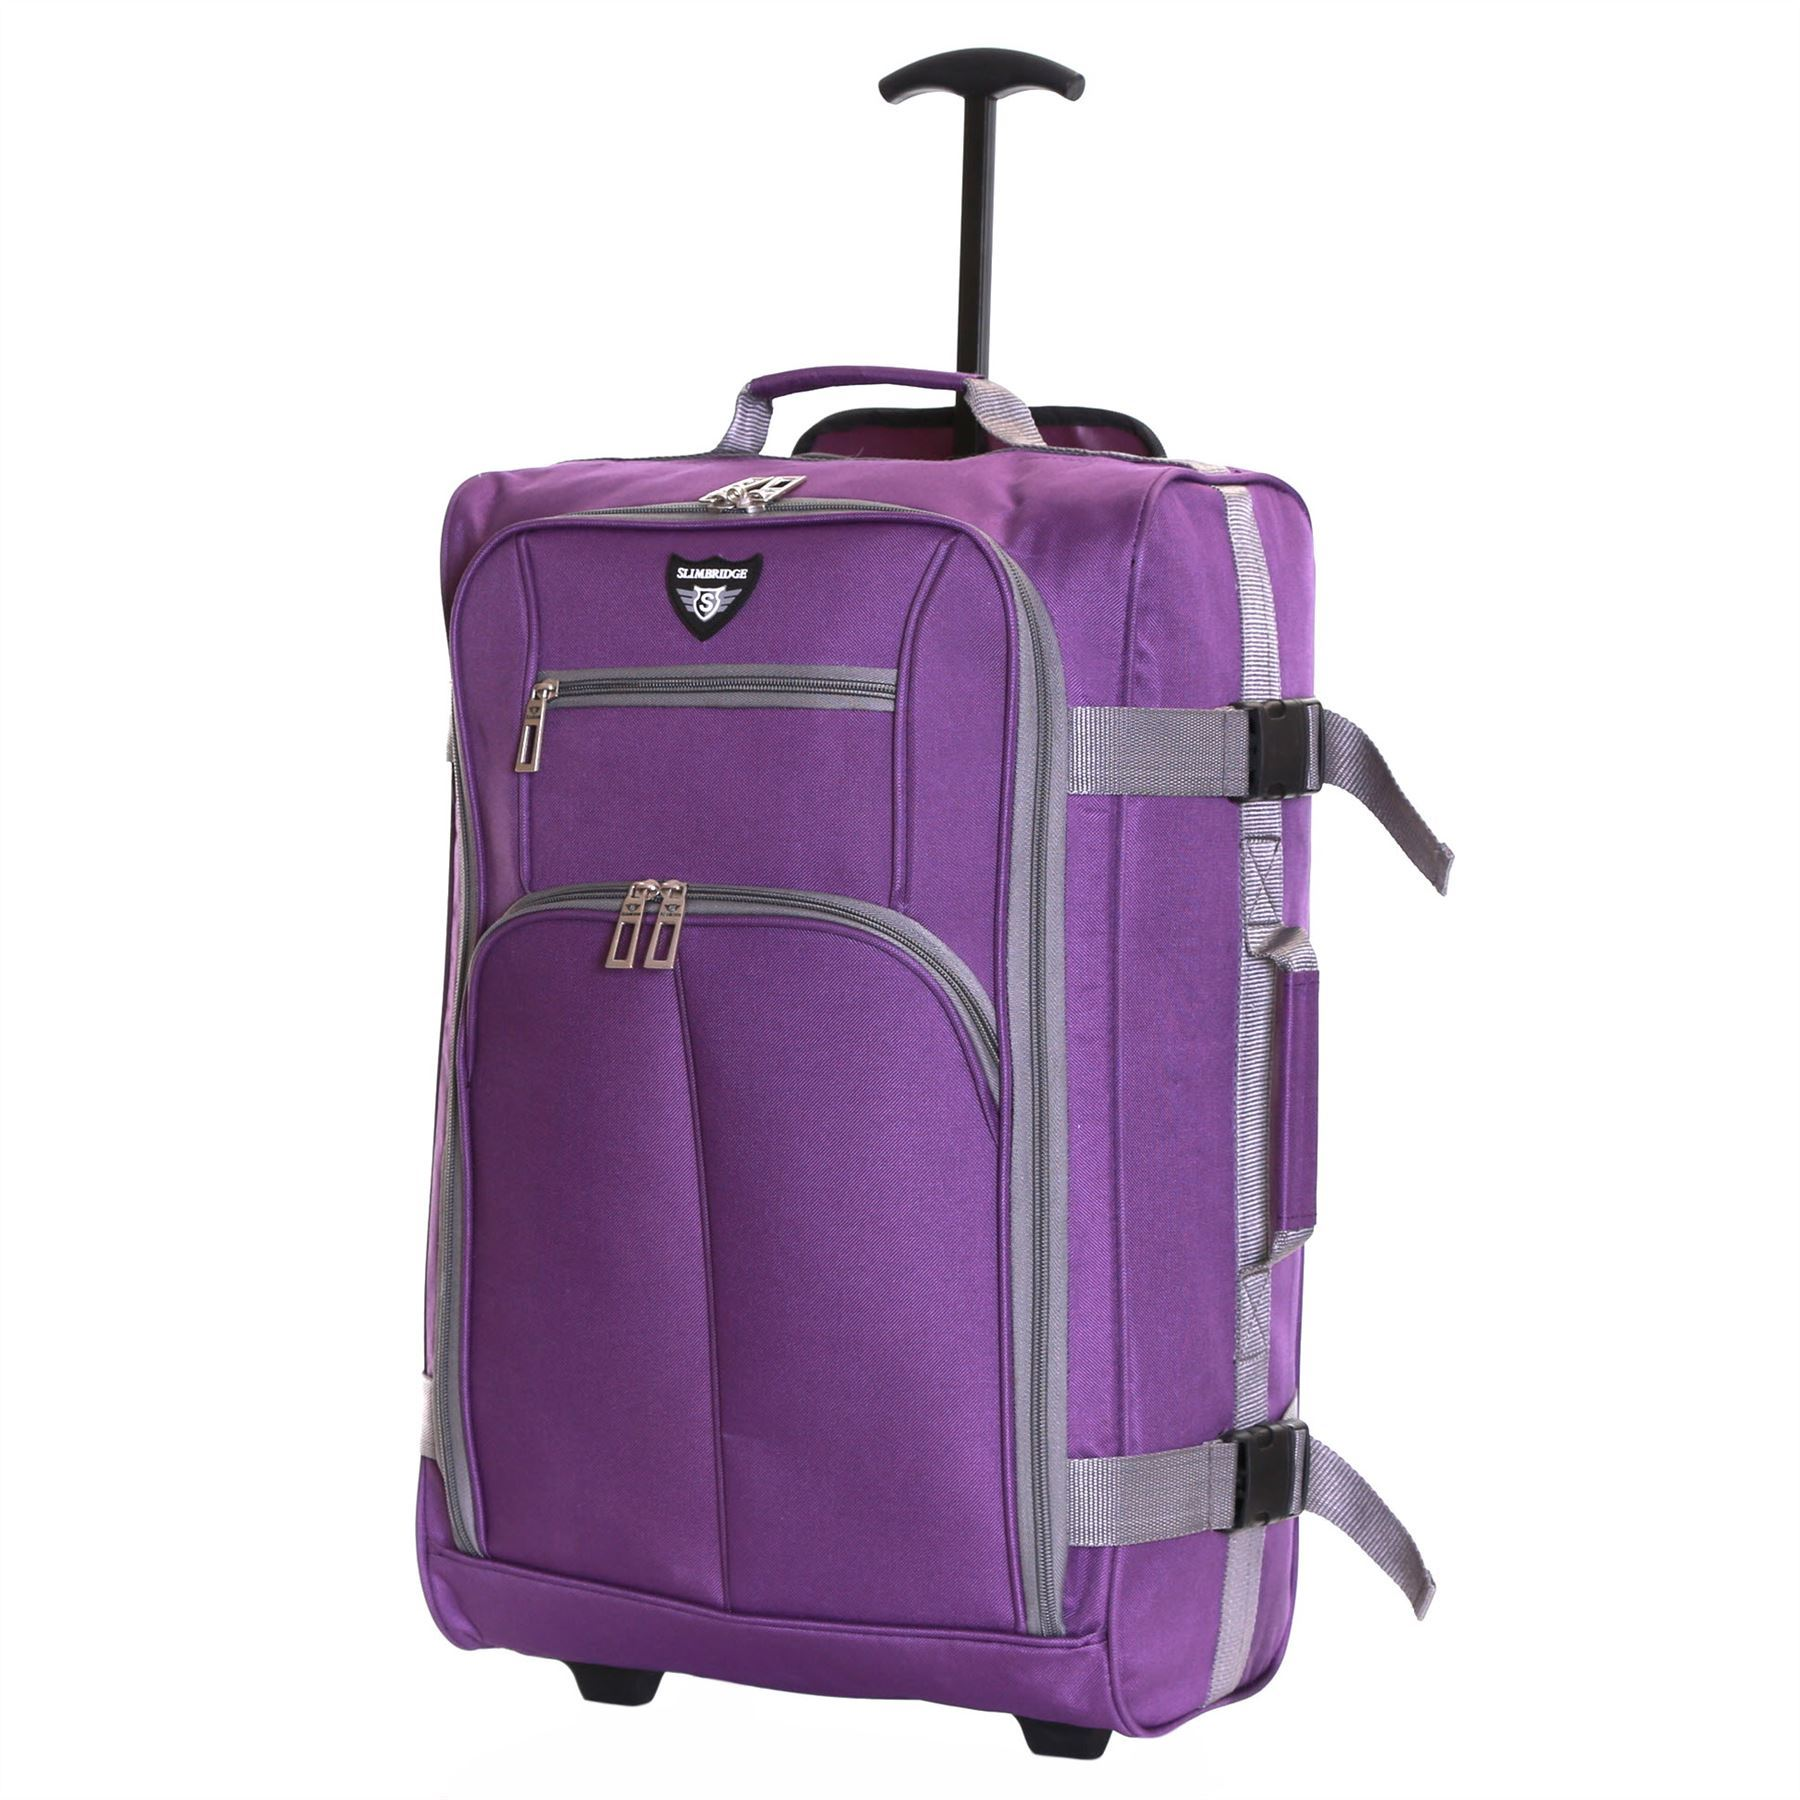 Ryanair-Easyjet-Set-of-2-Cabin-Approved-Hand-Trolley-Suitcases-Luggage-Case-Bags thumbnail 22